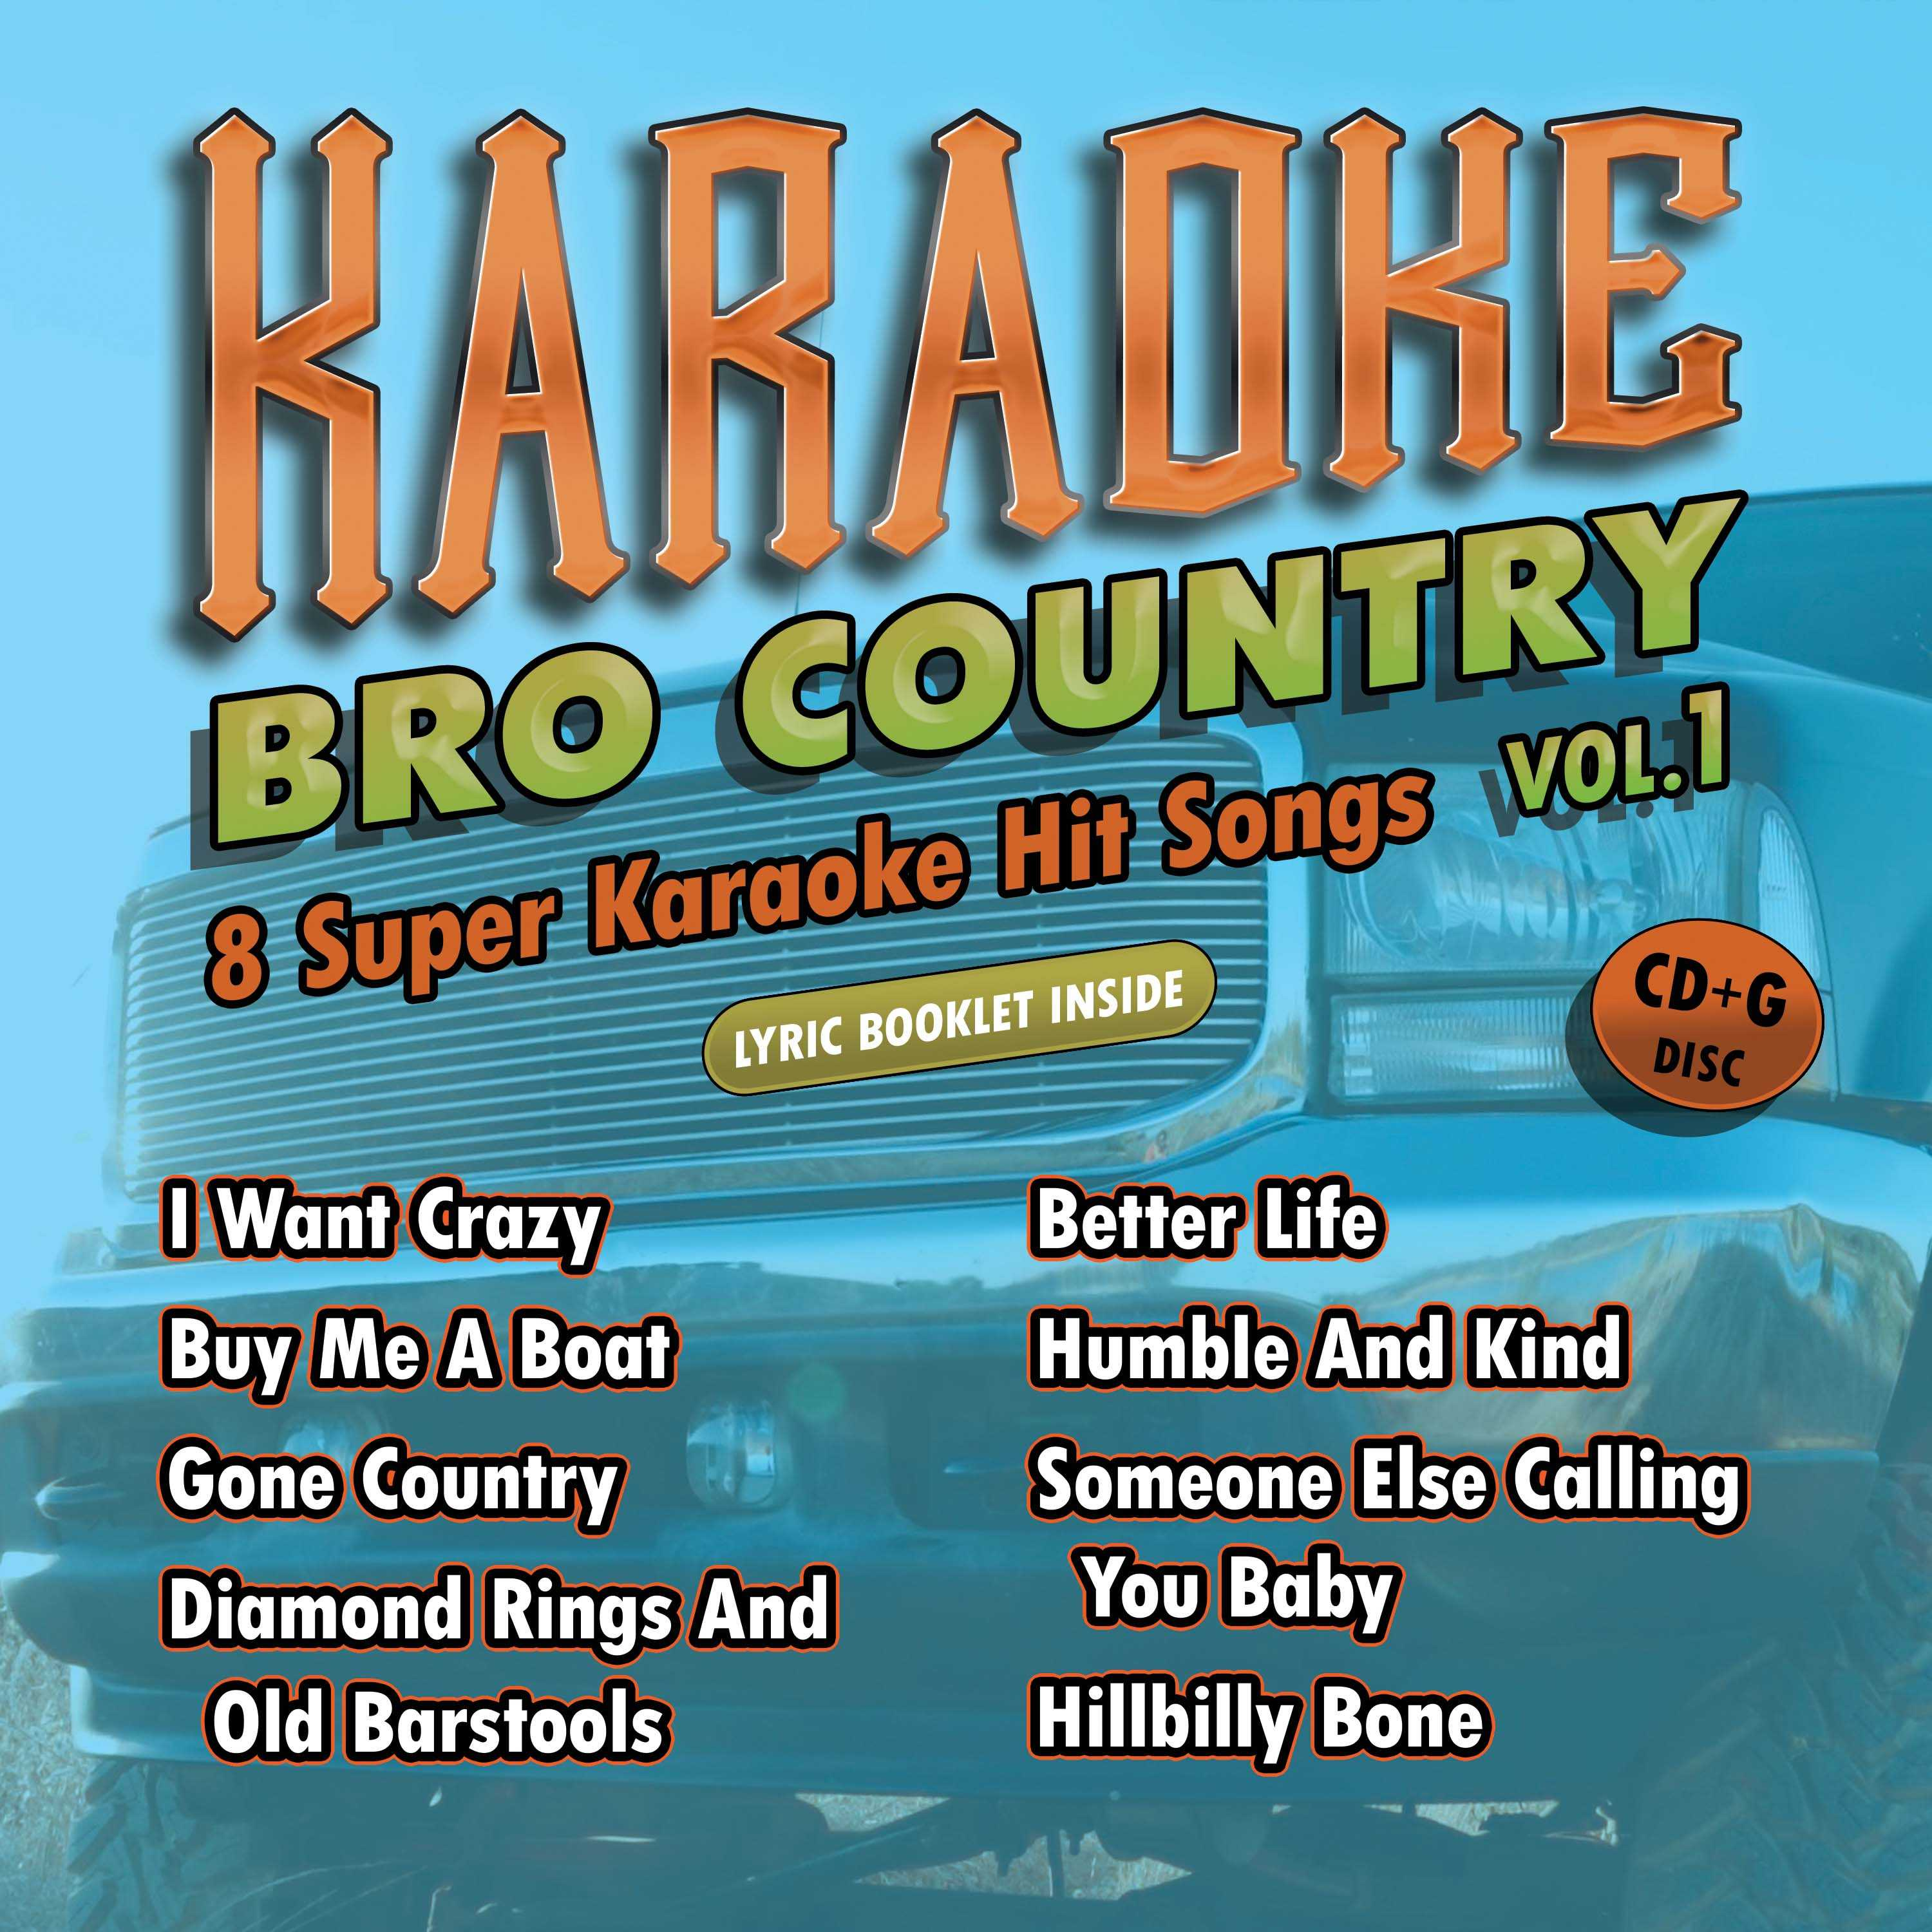 karaoke-music-bro-country-vol--1.jpg